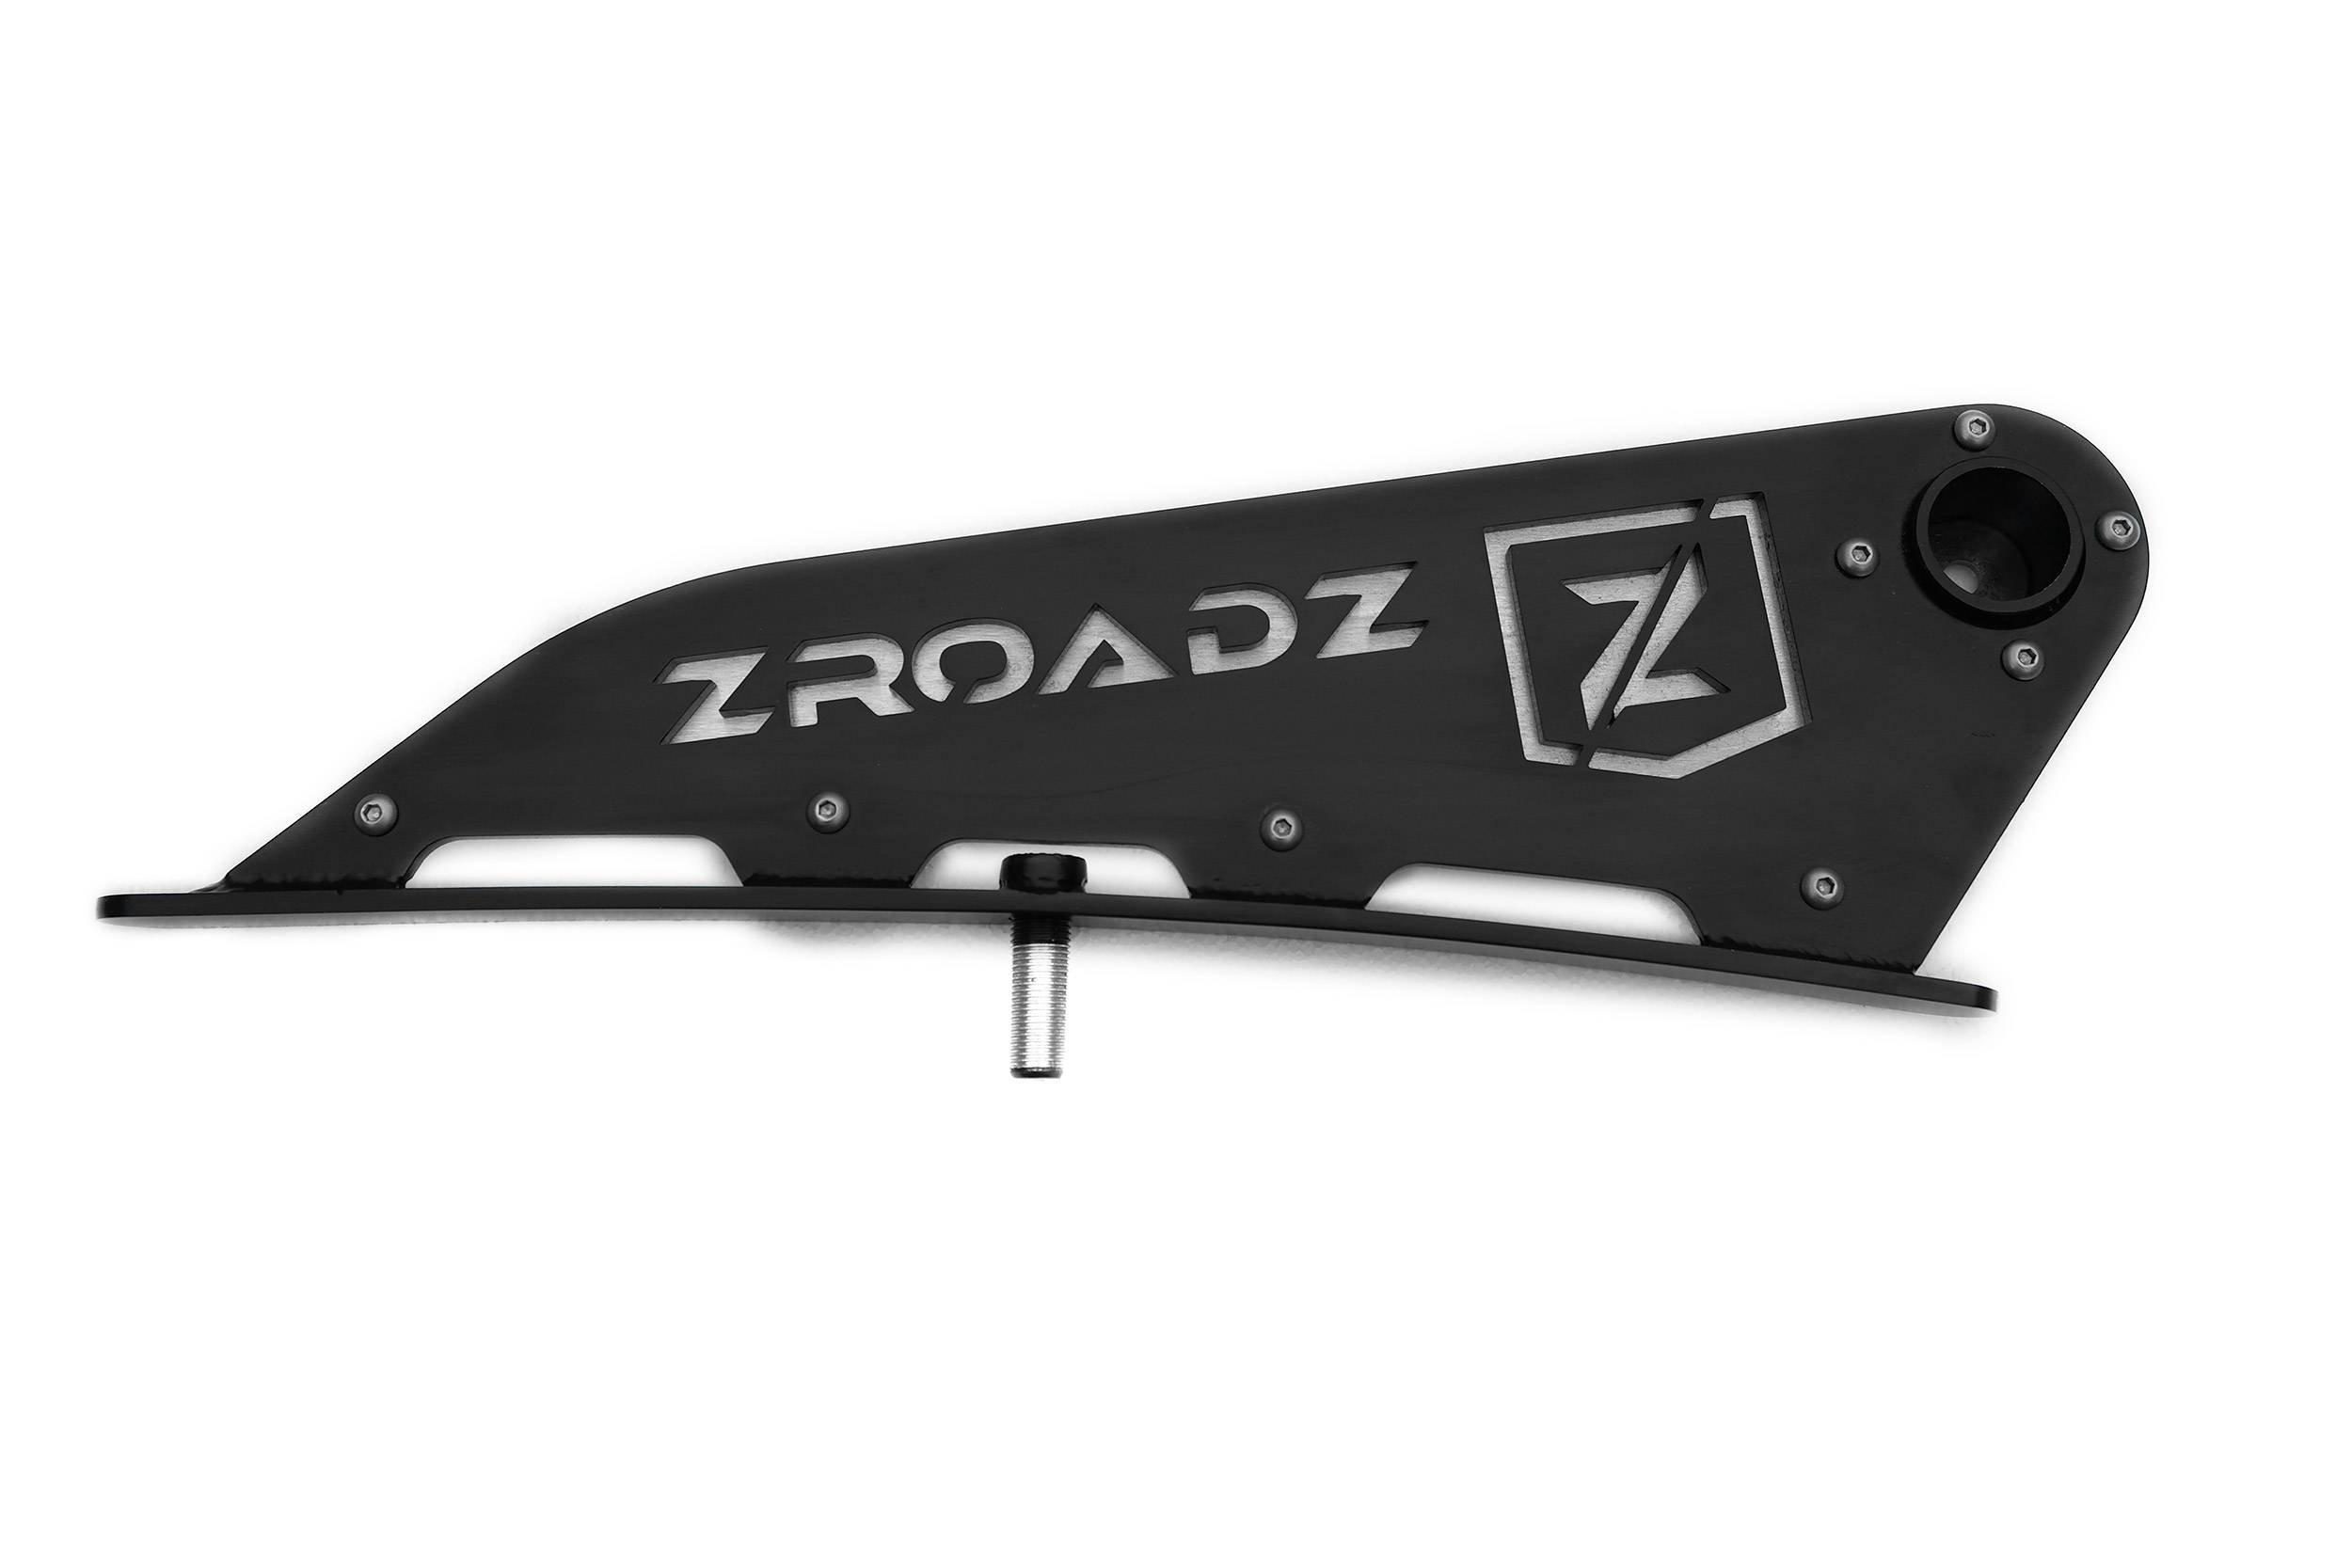 Silverado, Sierra 1500 Front Roof LED Bracket to mount (1) 50 Inch Staight LED Light Bar - PN #Z332181